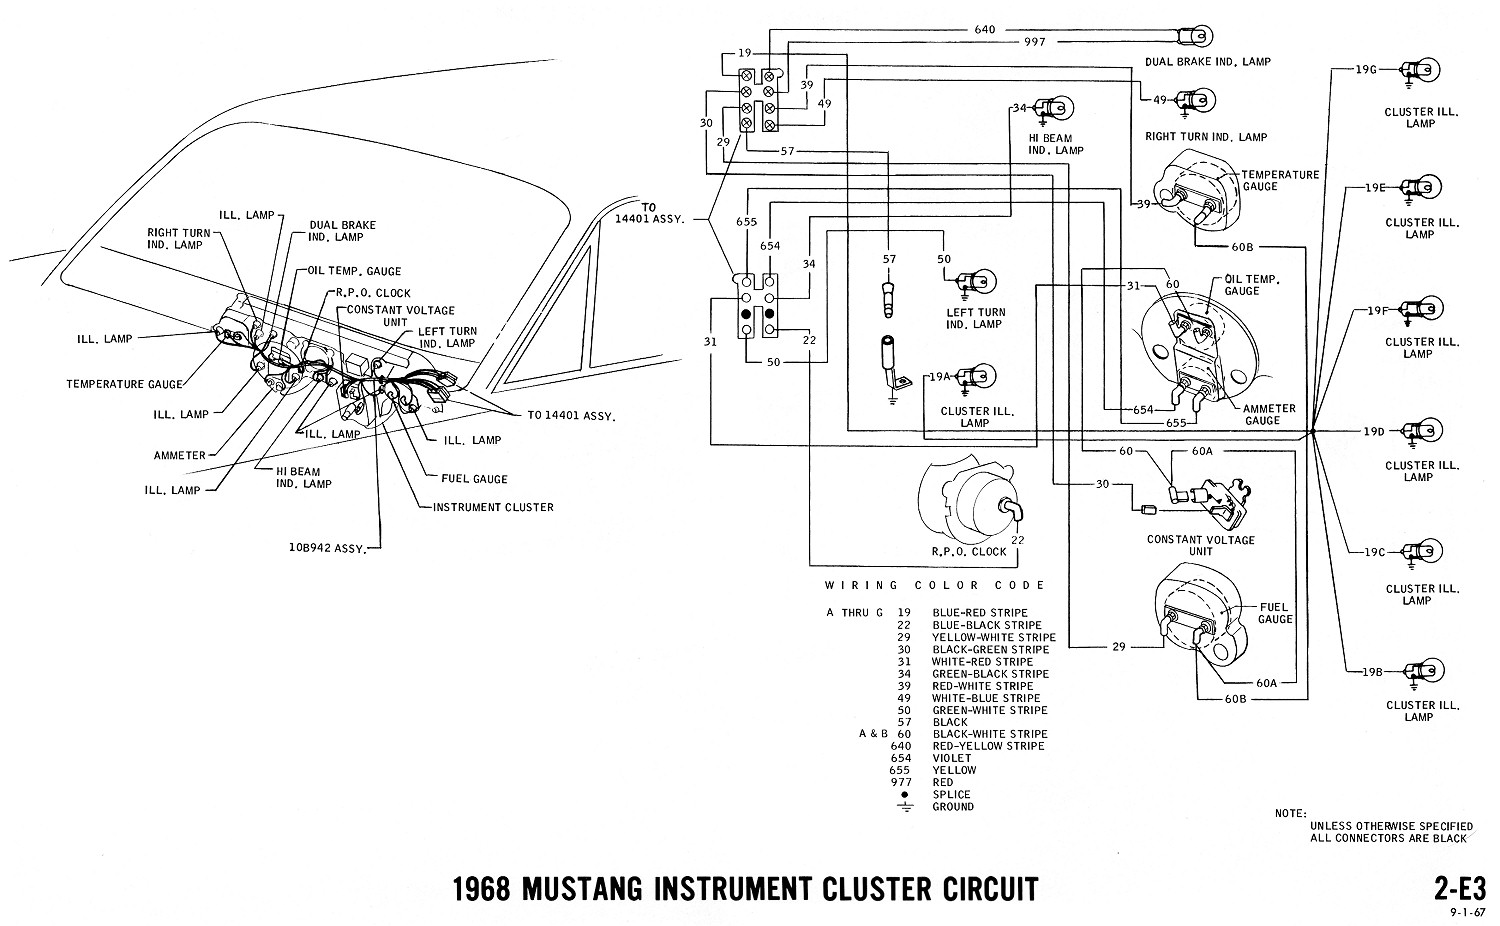 1968 Mustang Wiring Diagrams Evolving Software Light And Schematic Instrument Cluster Clock Gauges